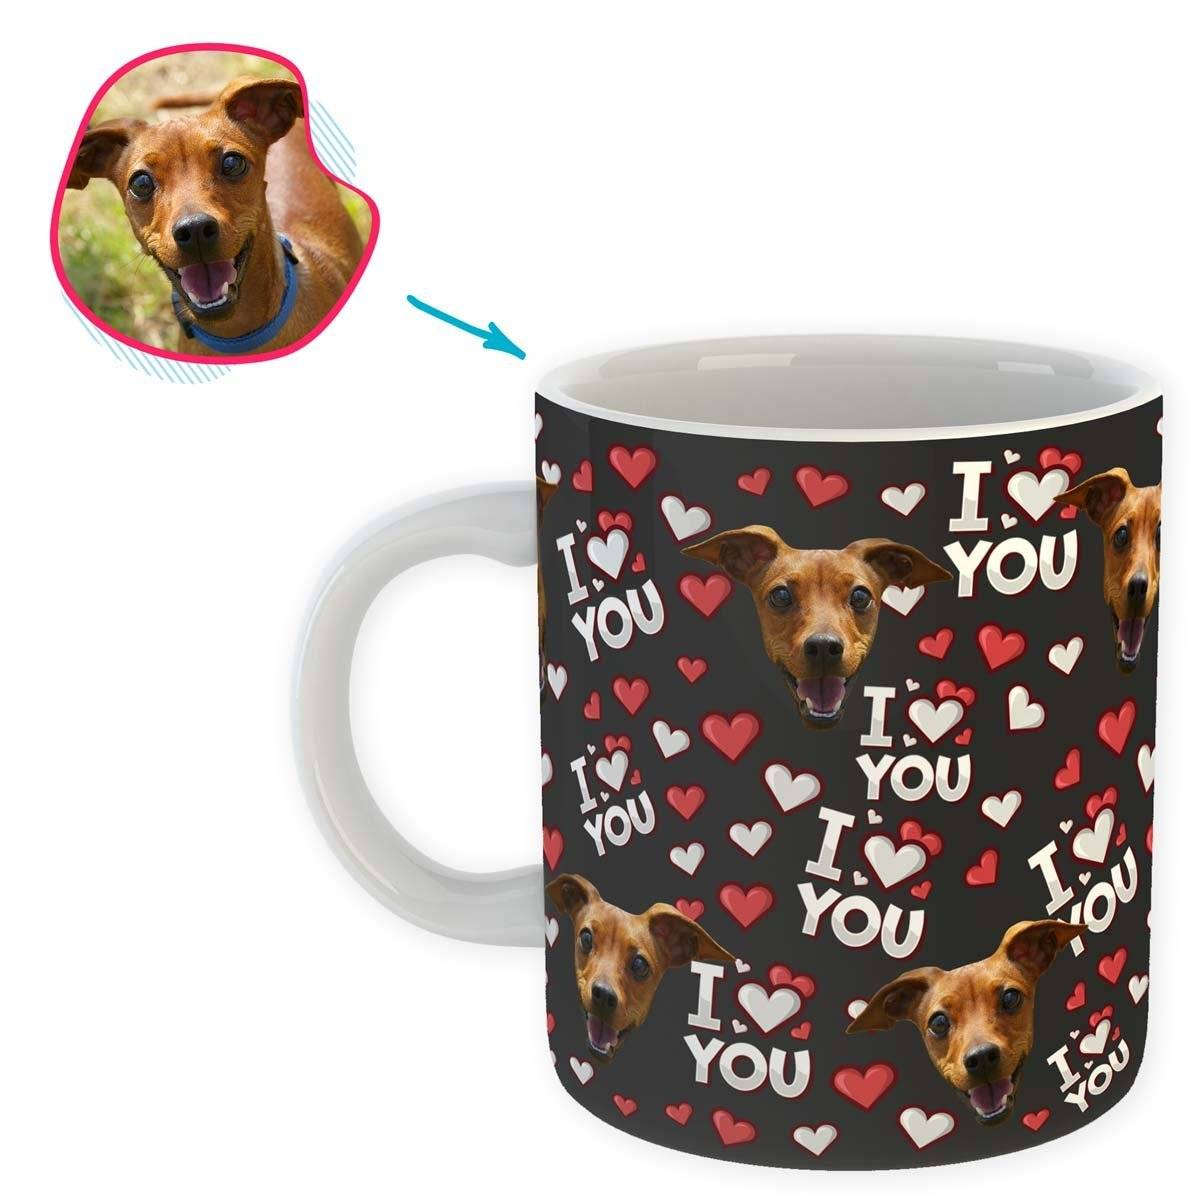 dark I Love You mug personalized with photo of face printed on it